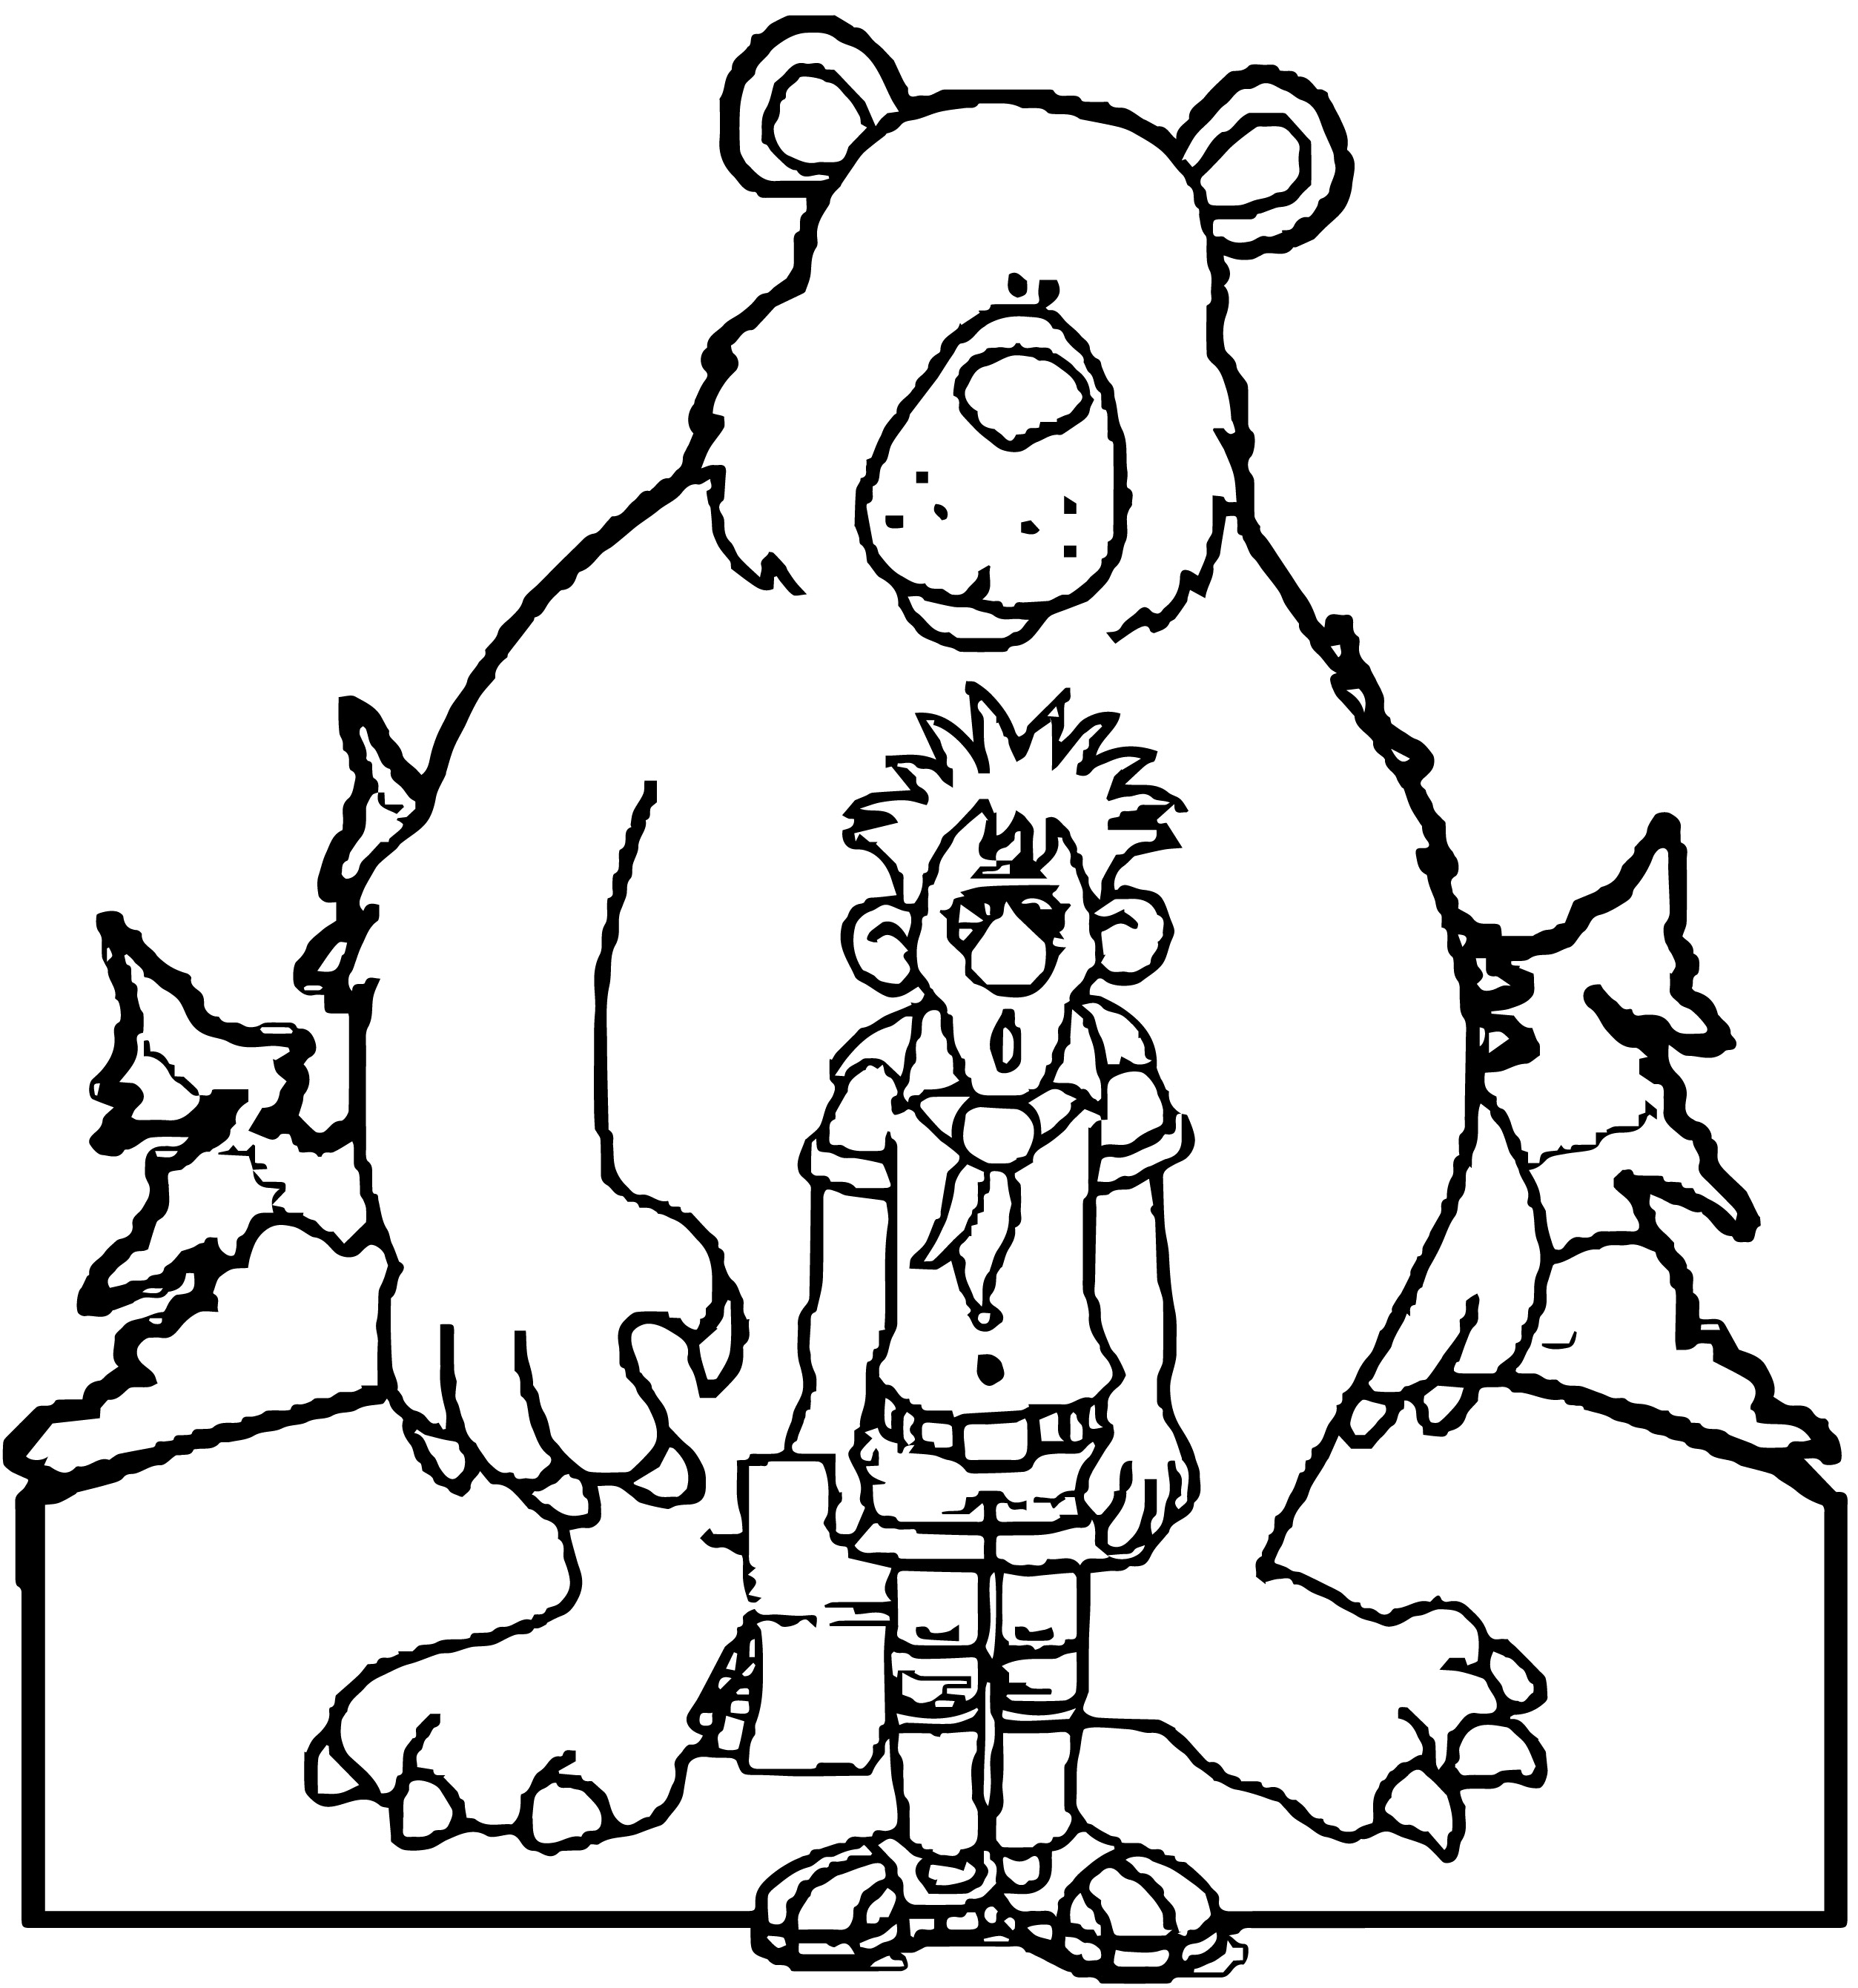 Bear_Scared_Boy_Scout_Cute_Camping_Coloring_page